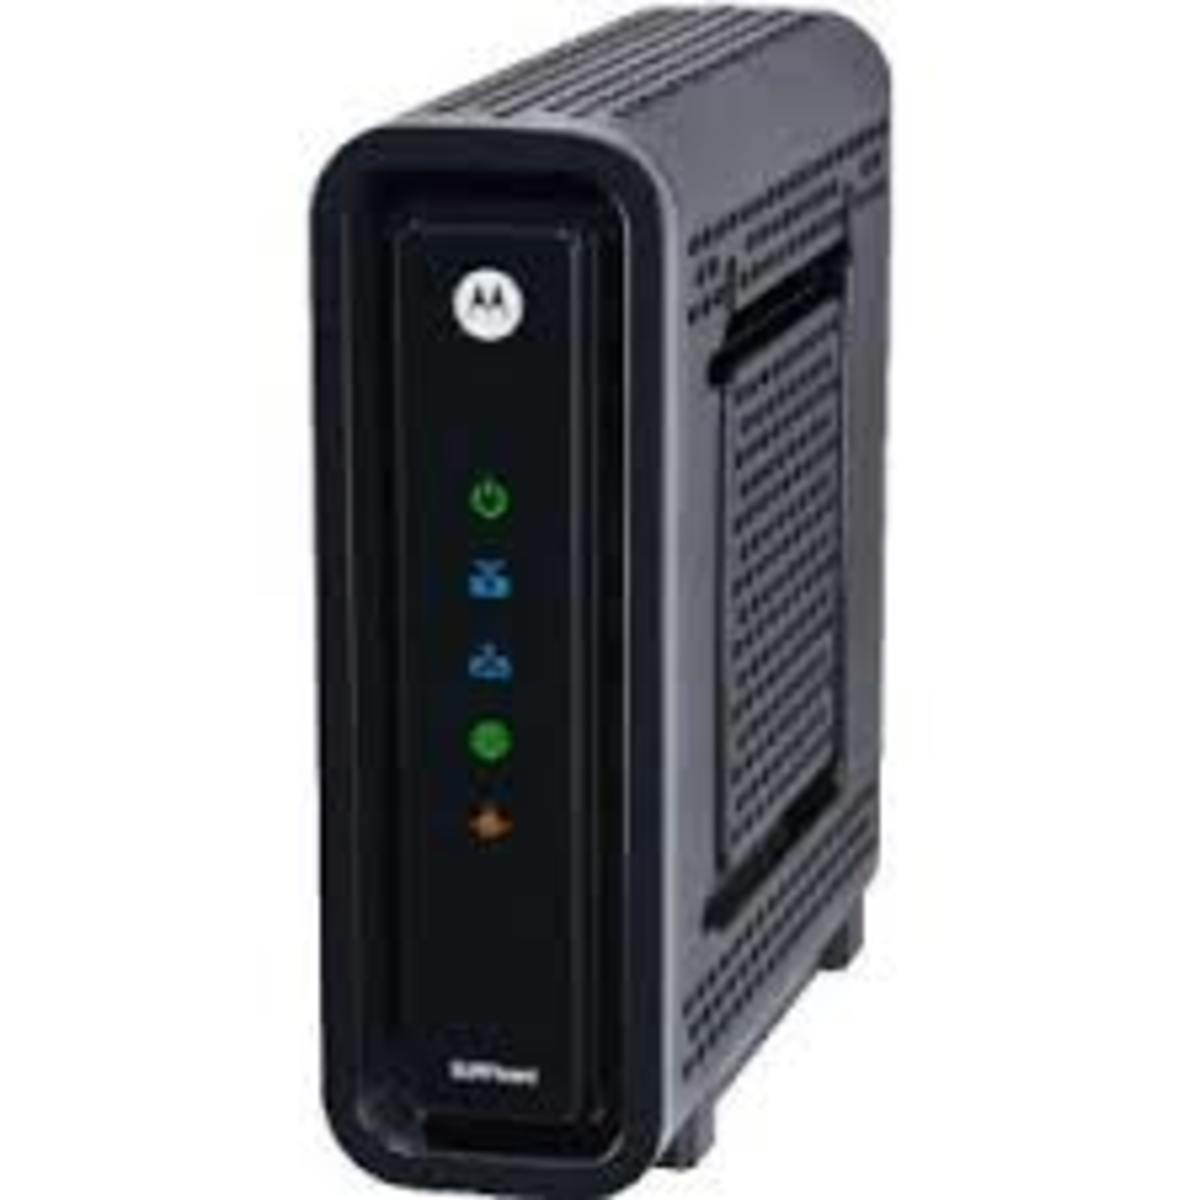 The Motorola SB6121 or SB6141 are some of the best cable modem in the market today